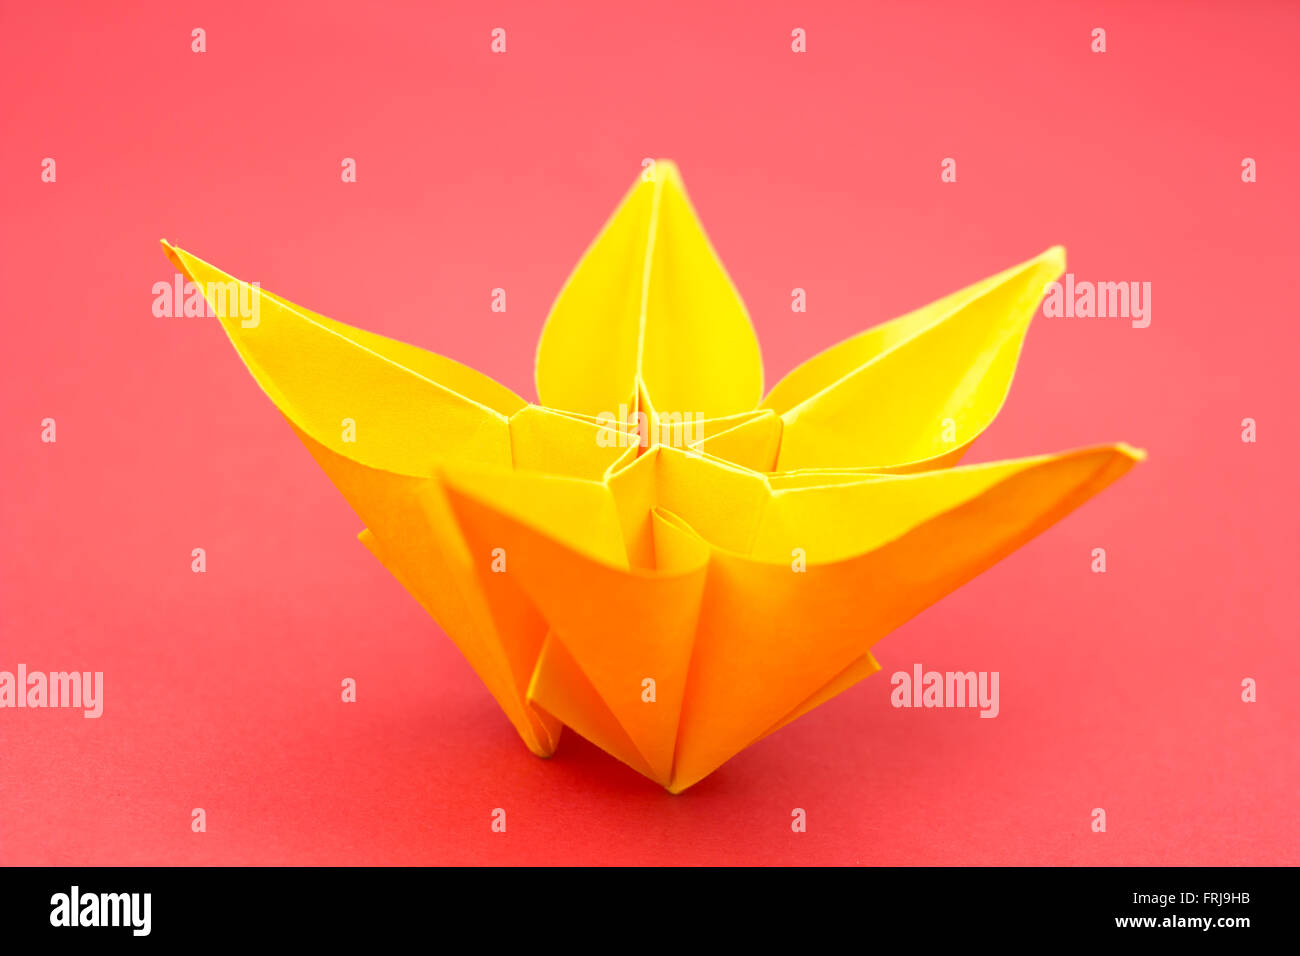 Origami Flower Stock Photos Origami Flower Stock Images Alamy